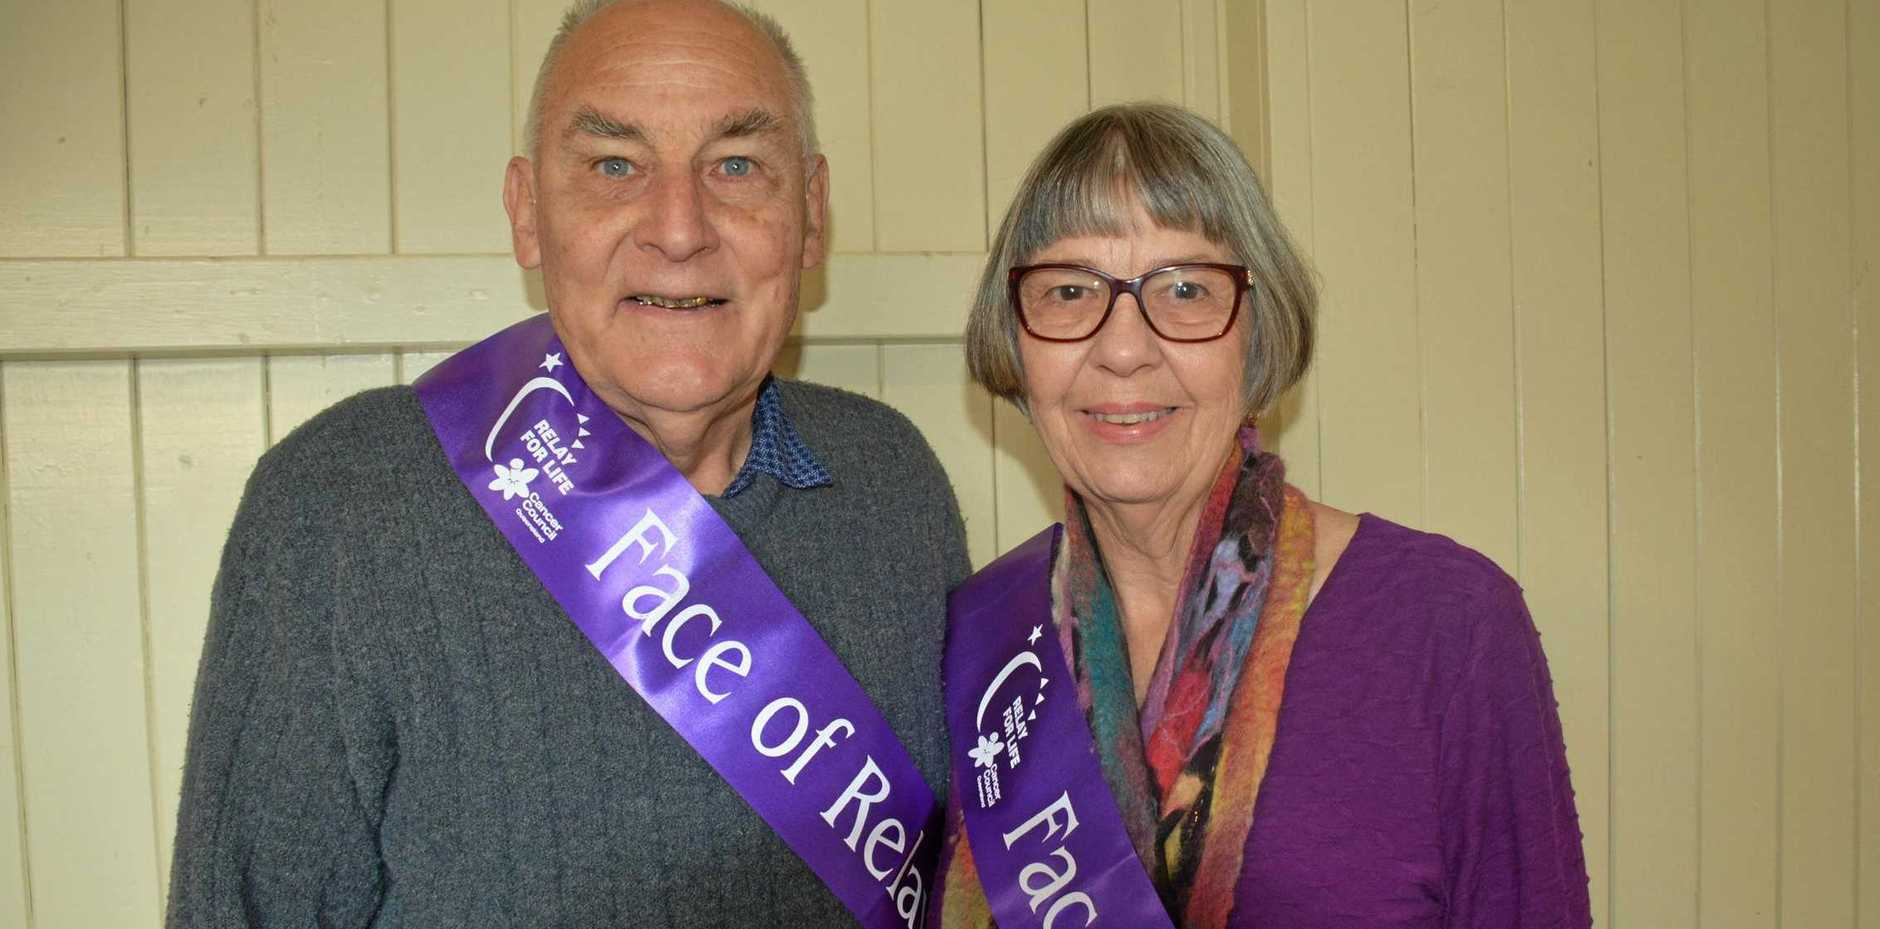 Eric and Carla Cross are this year's South Burnett Relay For Life Face of the Relay representatives.